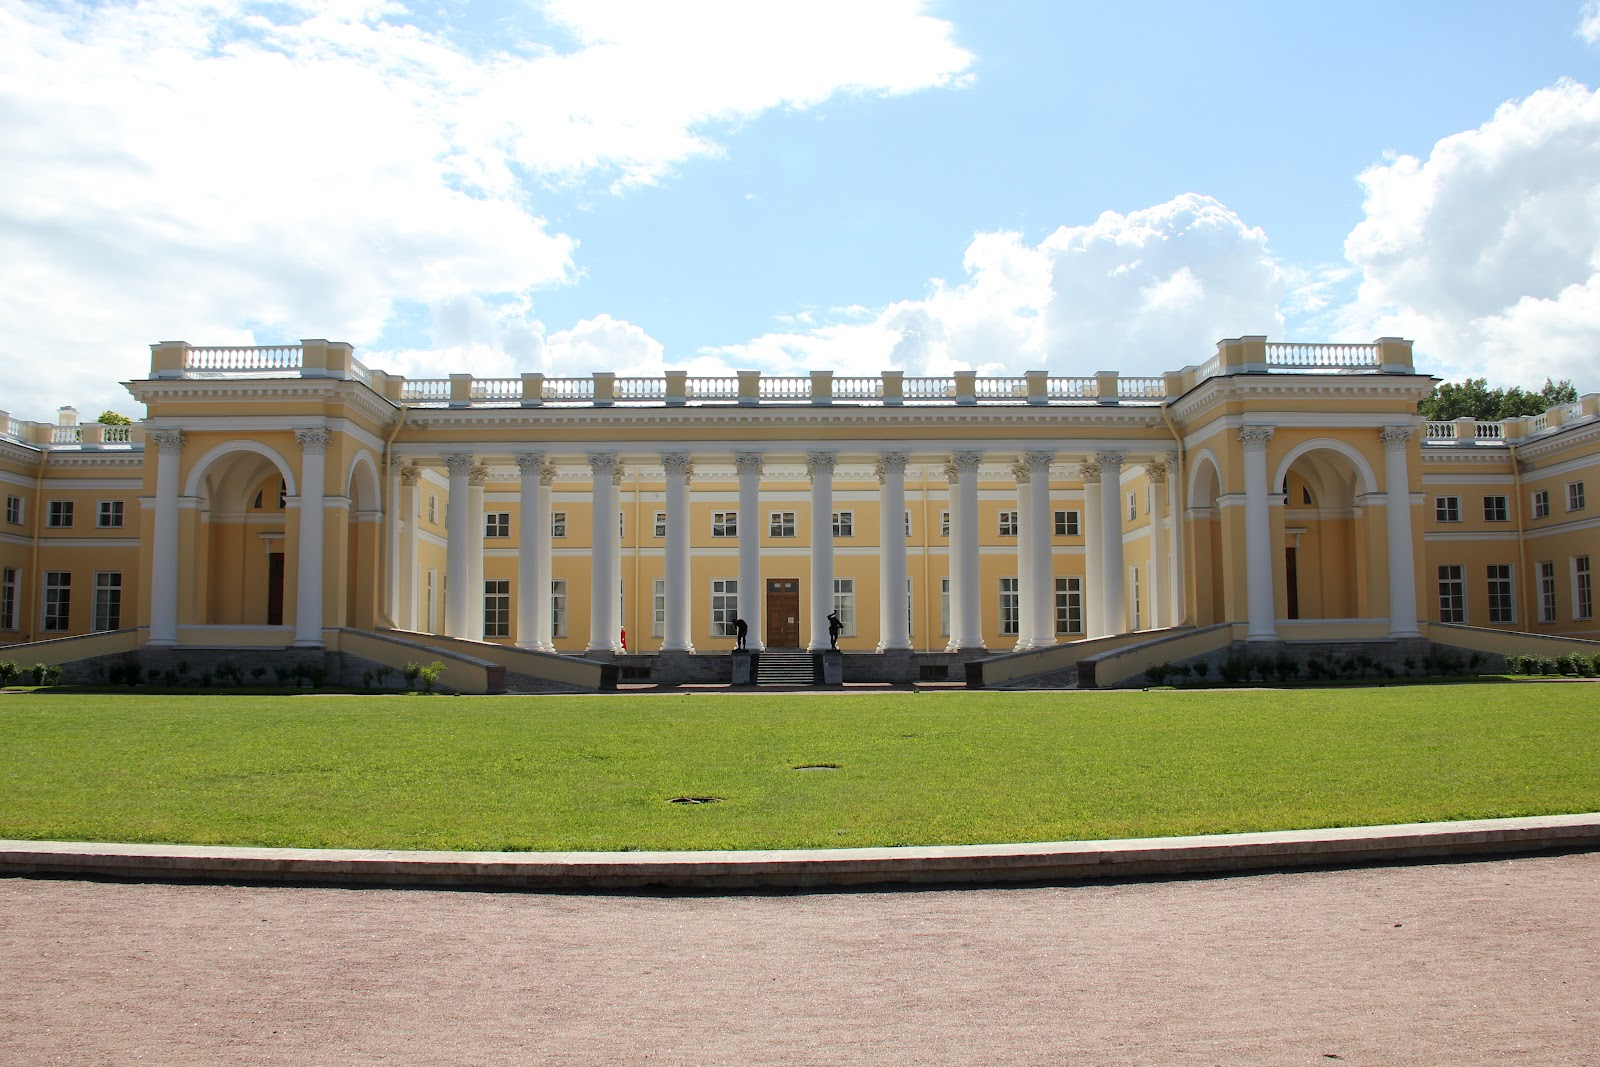 Reeds Around the World: Tsarskoe Selo